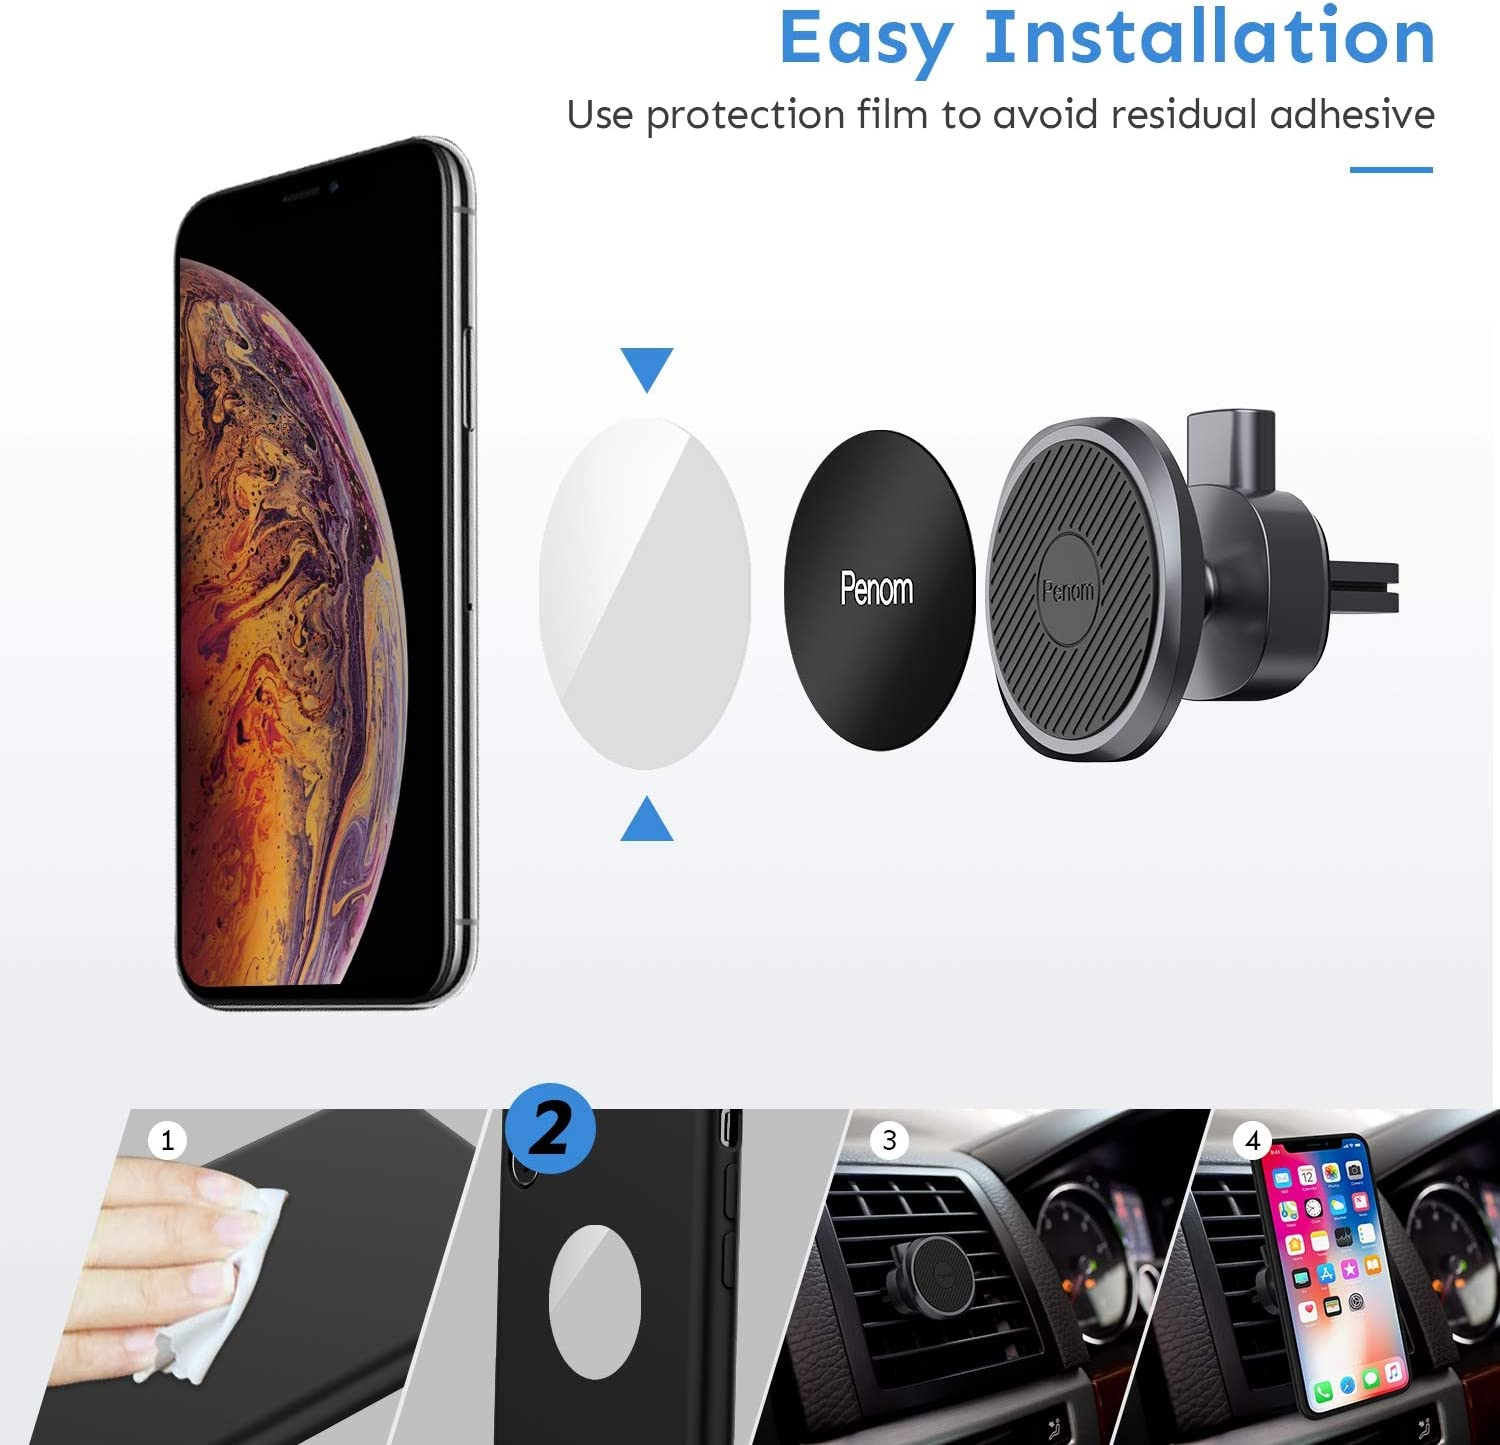 Magnetic Phone Car Mount Penom Cell Phone Holder for Car Universal Air Vent Magnet Car Phone Mount Fits iPhone 11 Xs Max XR X 8 7 6S 6 Plus and Most Smartphones Silver